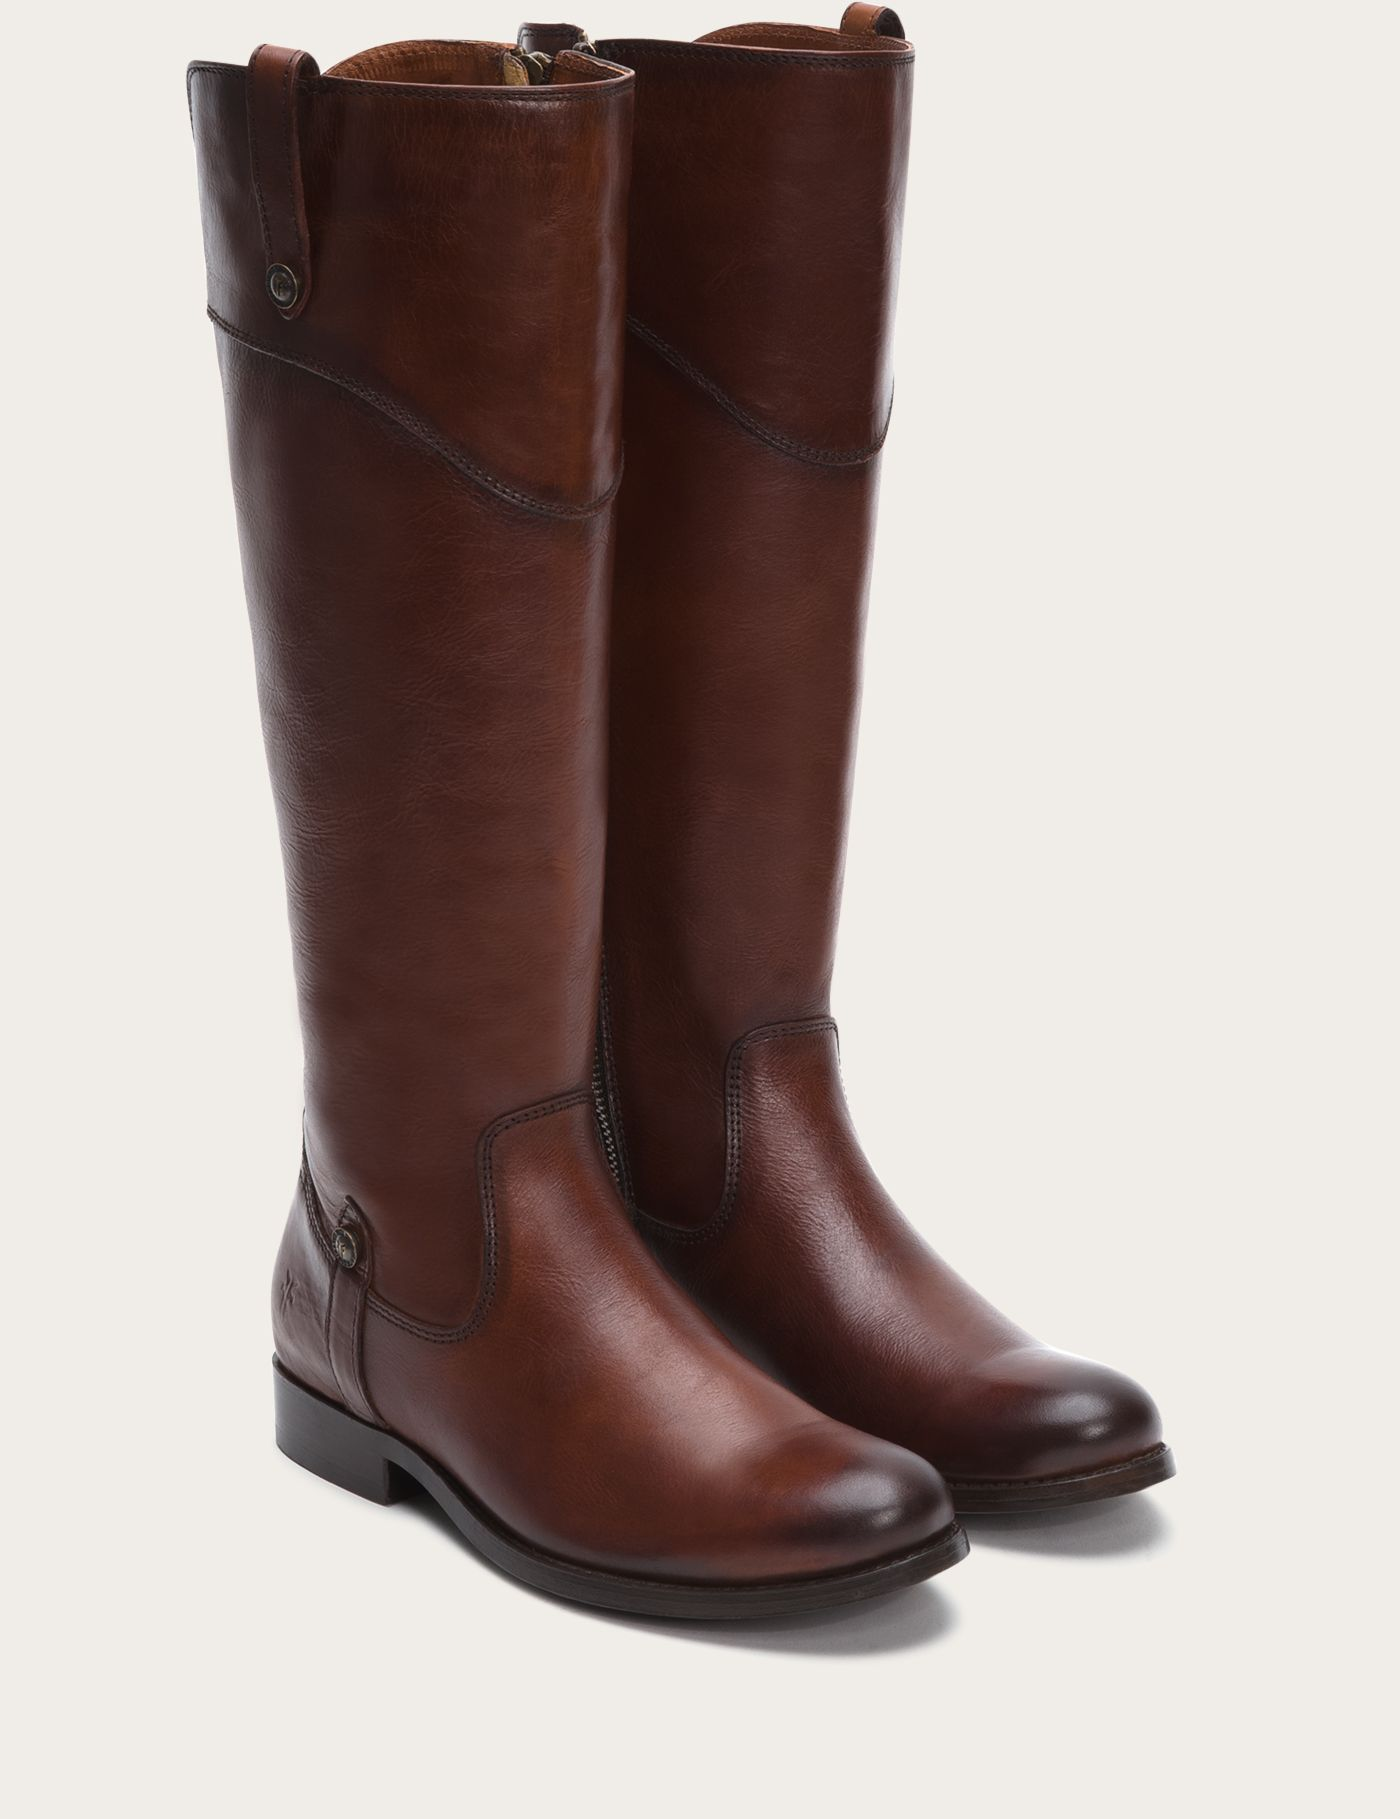 Leather Boots for Women - Best Sellers